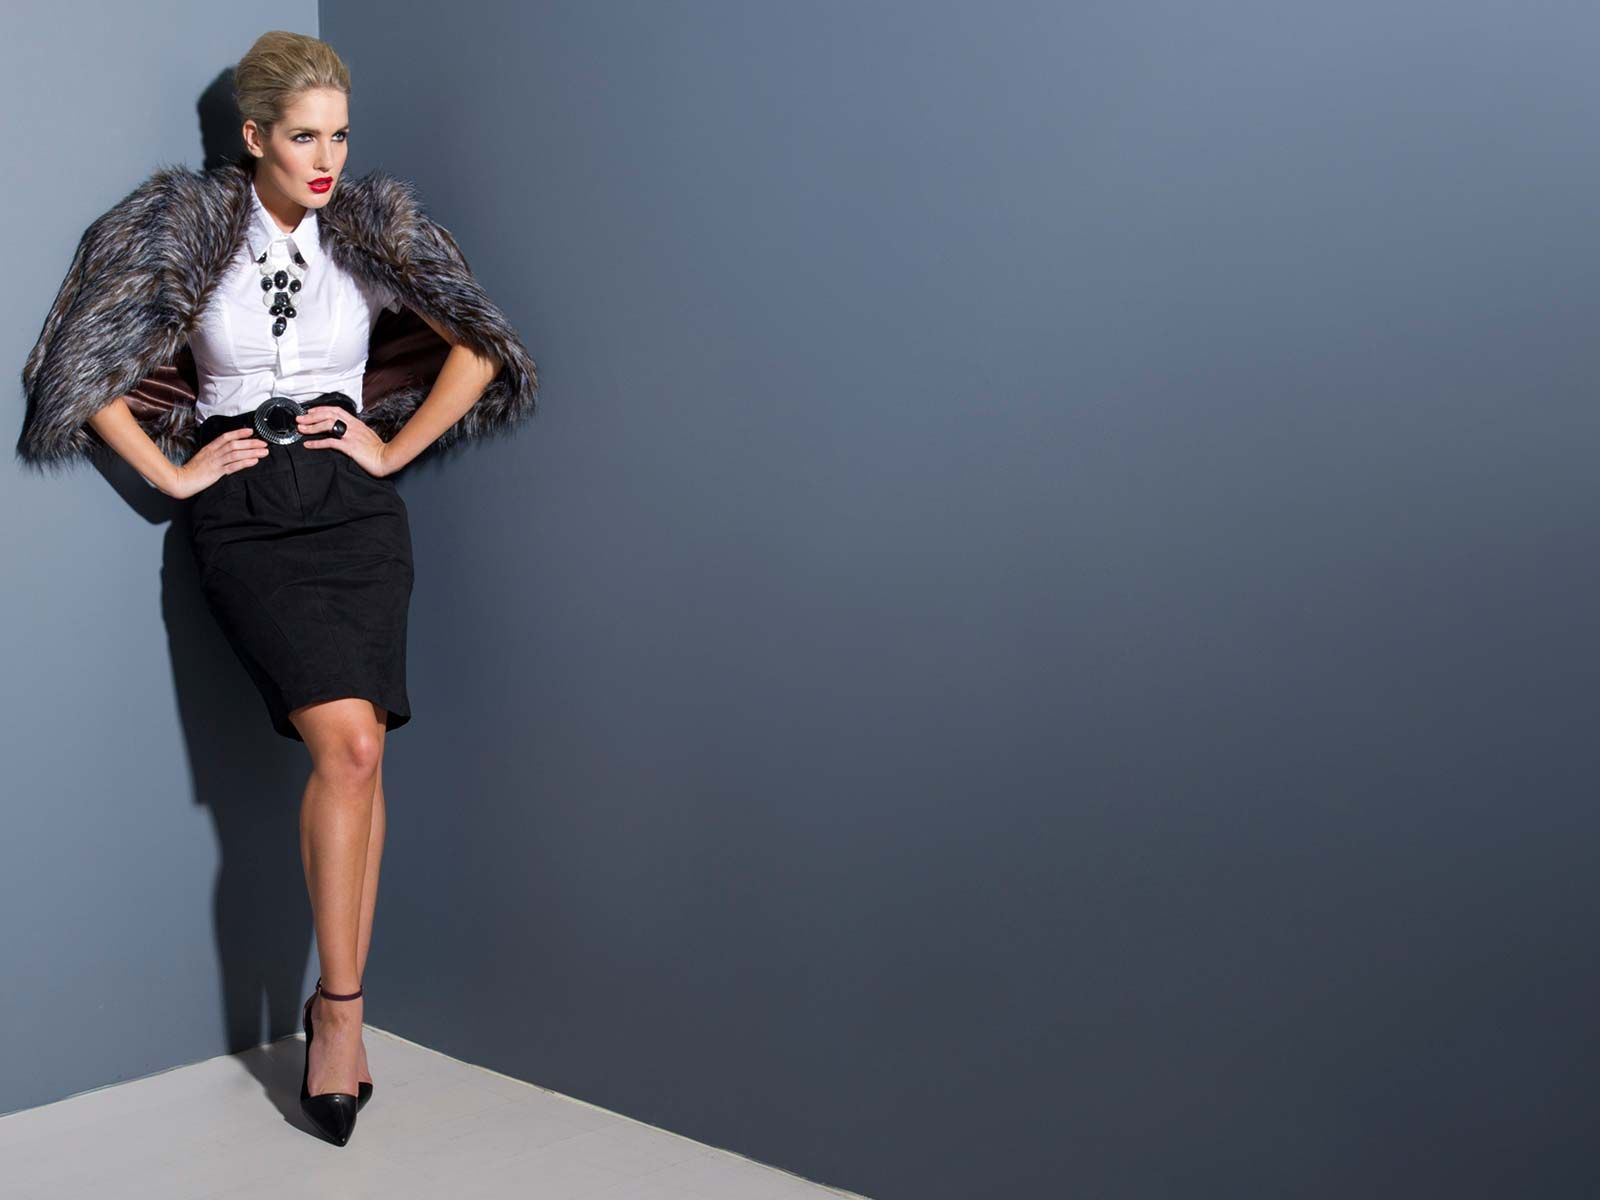 Ozsale - Savings of up to 80%. Affordable designer fashion.